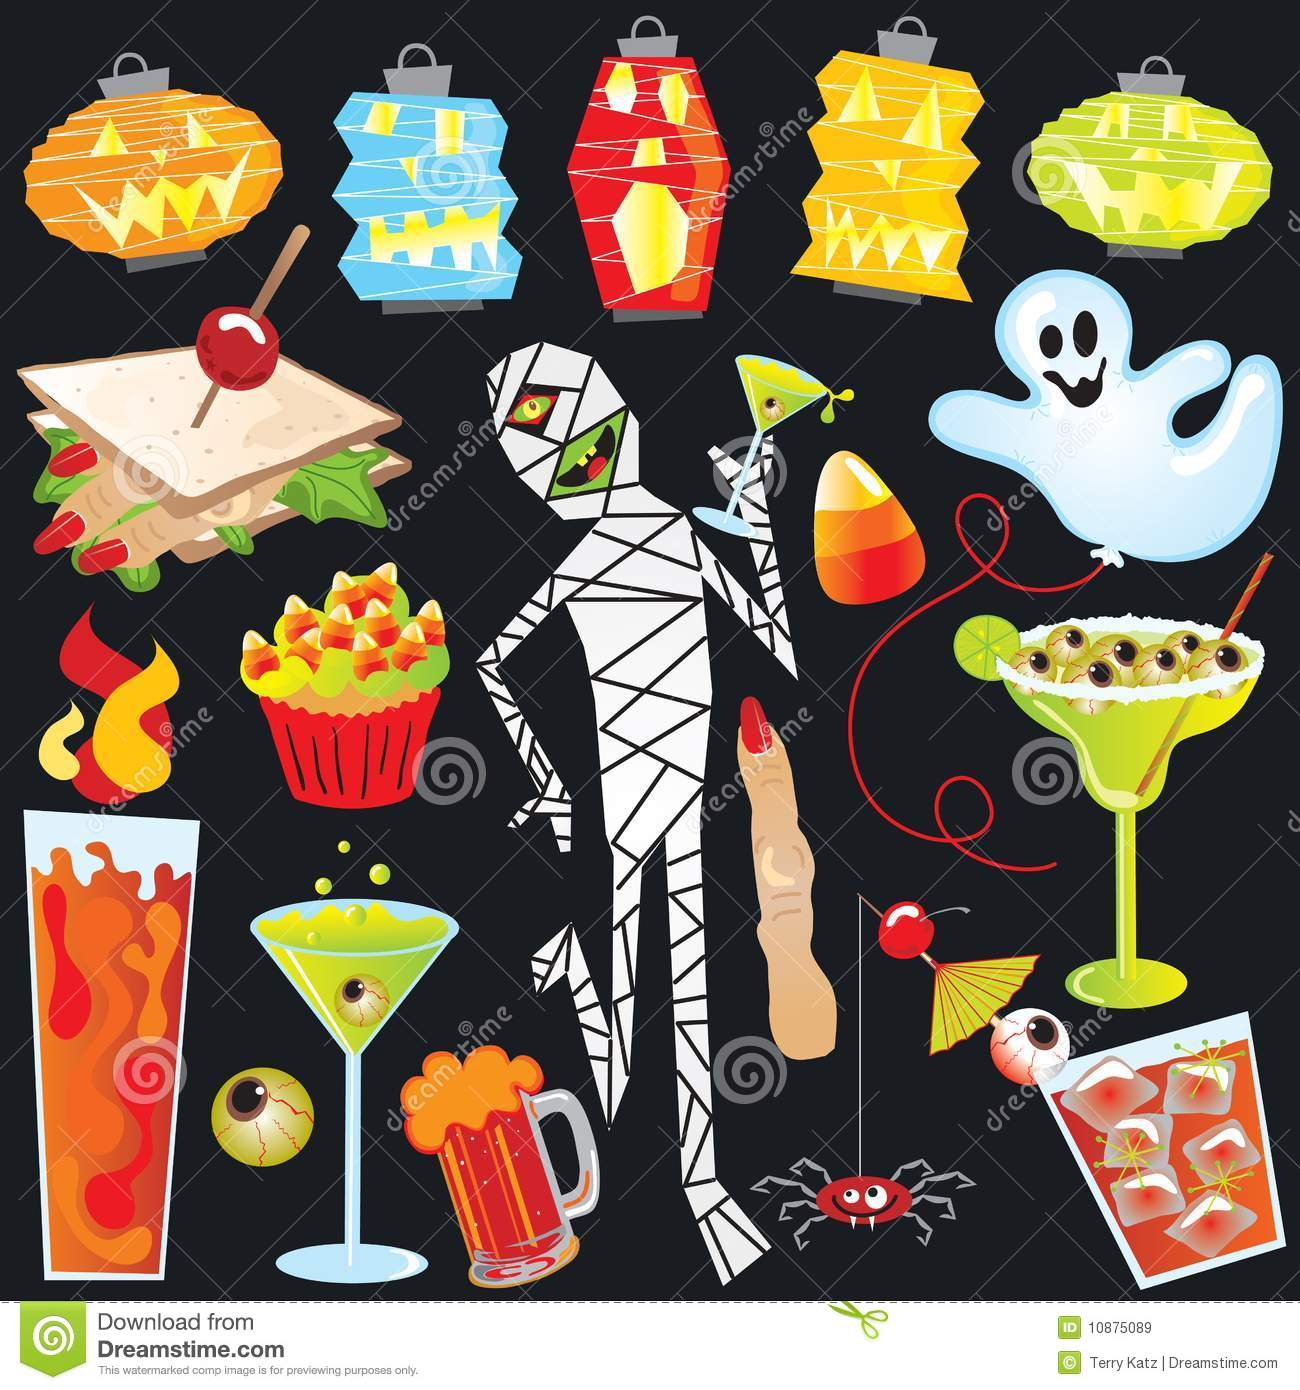 Halloween party clip art stock vector. Illustration of ...